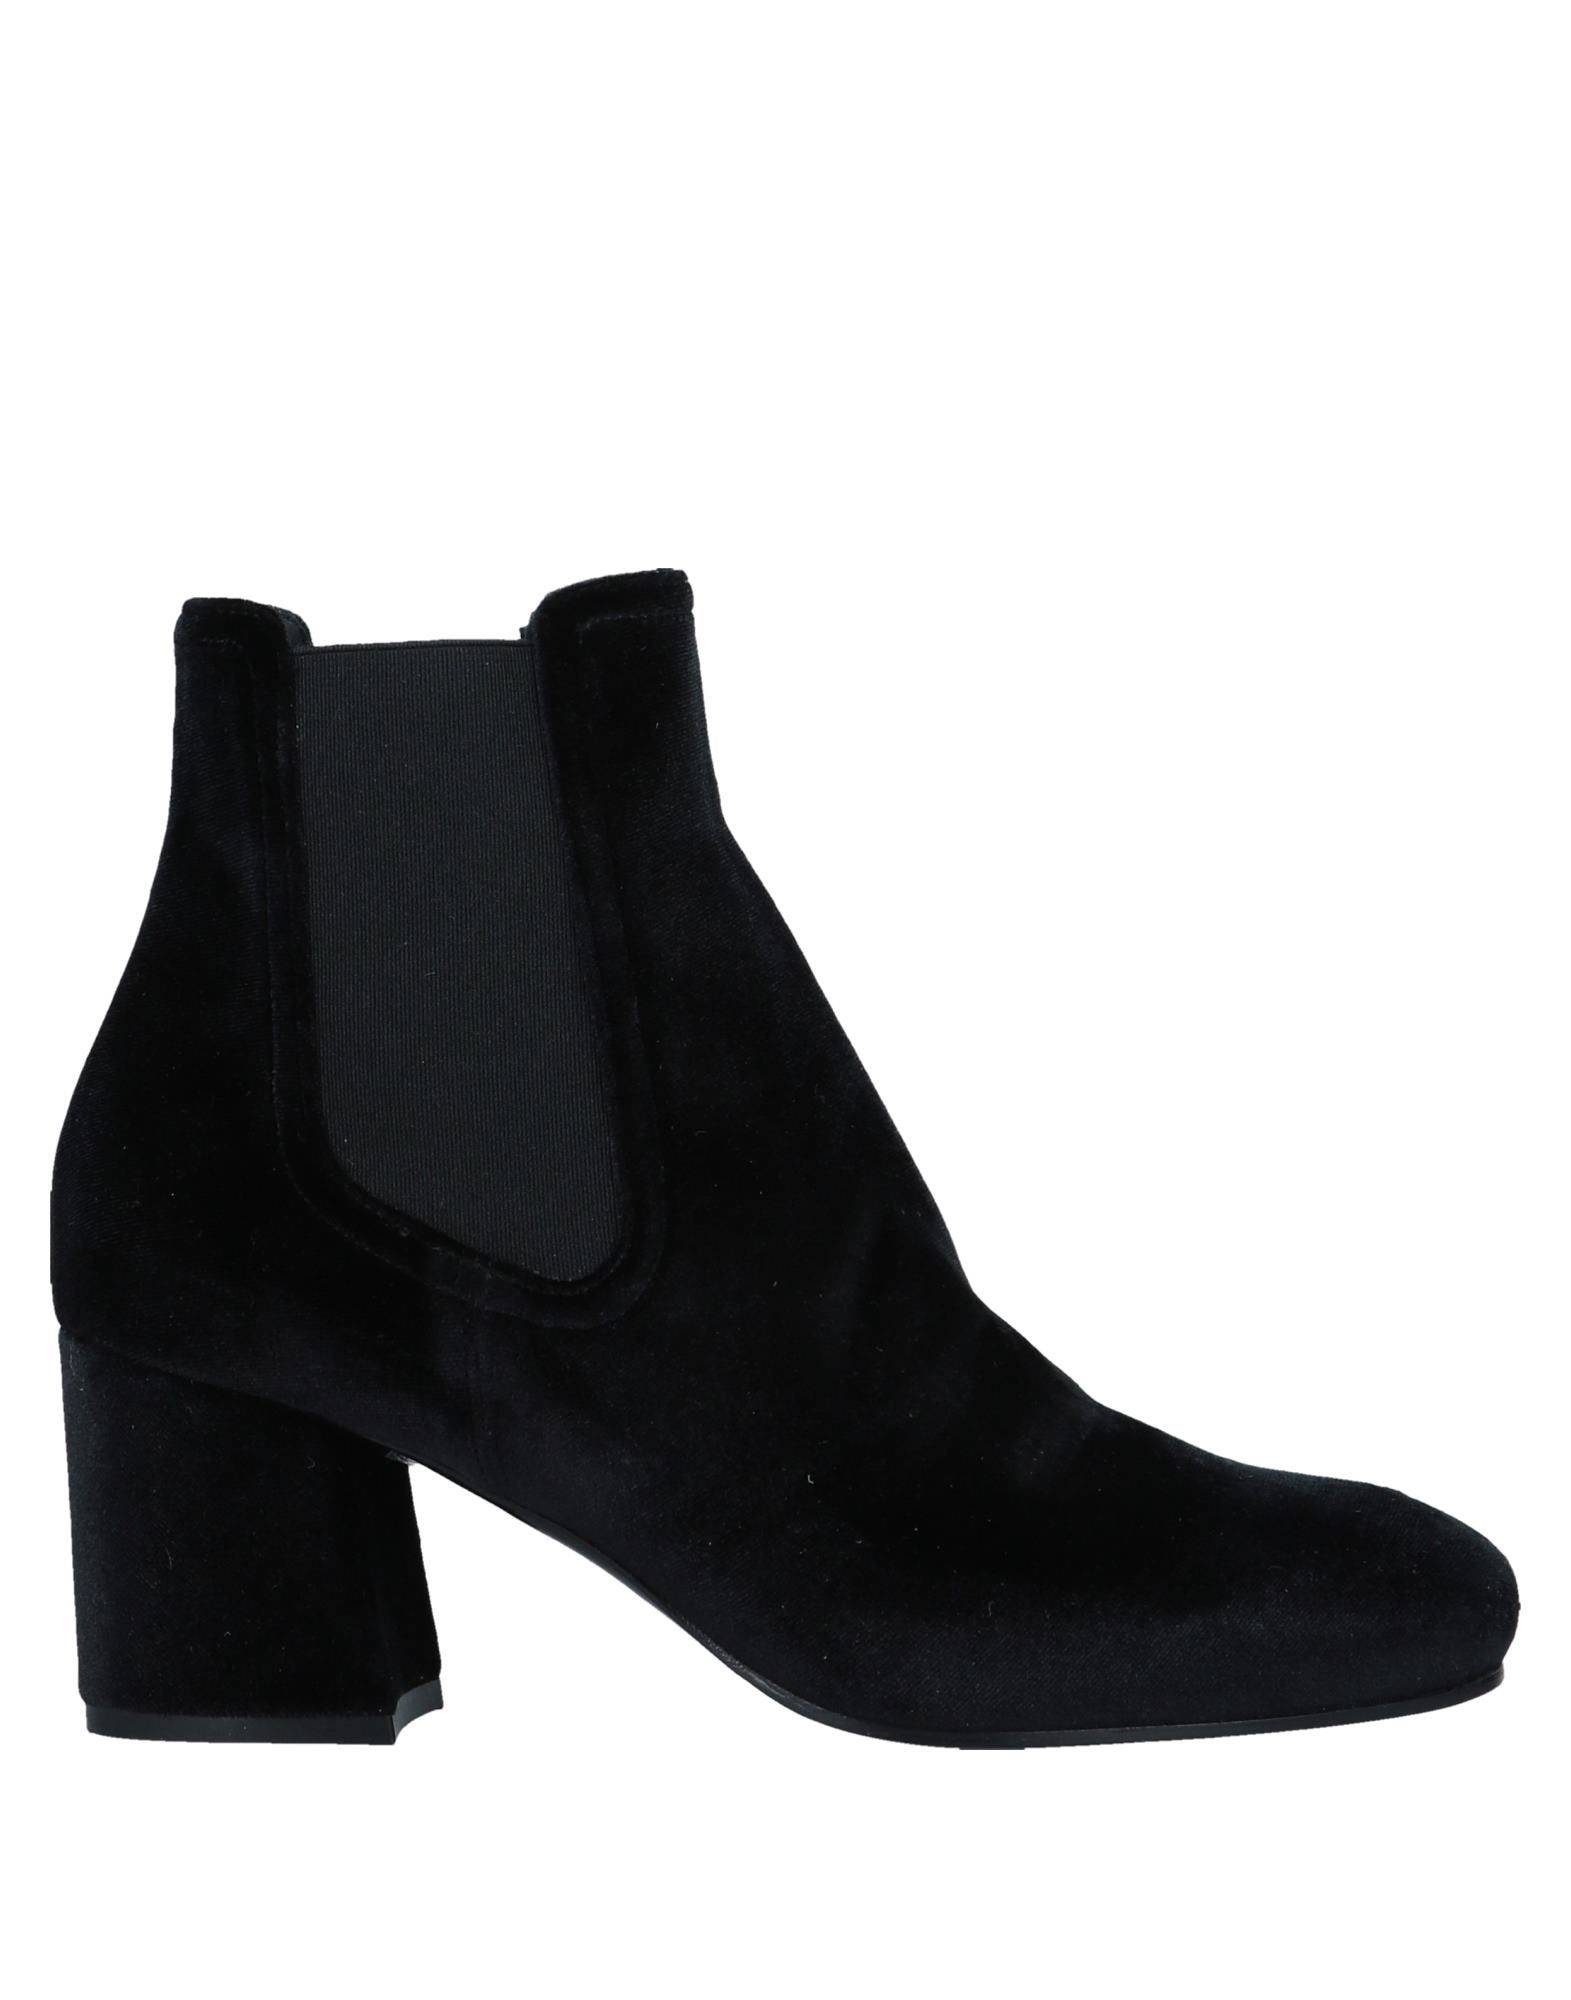 Ankle Boots in Black